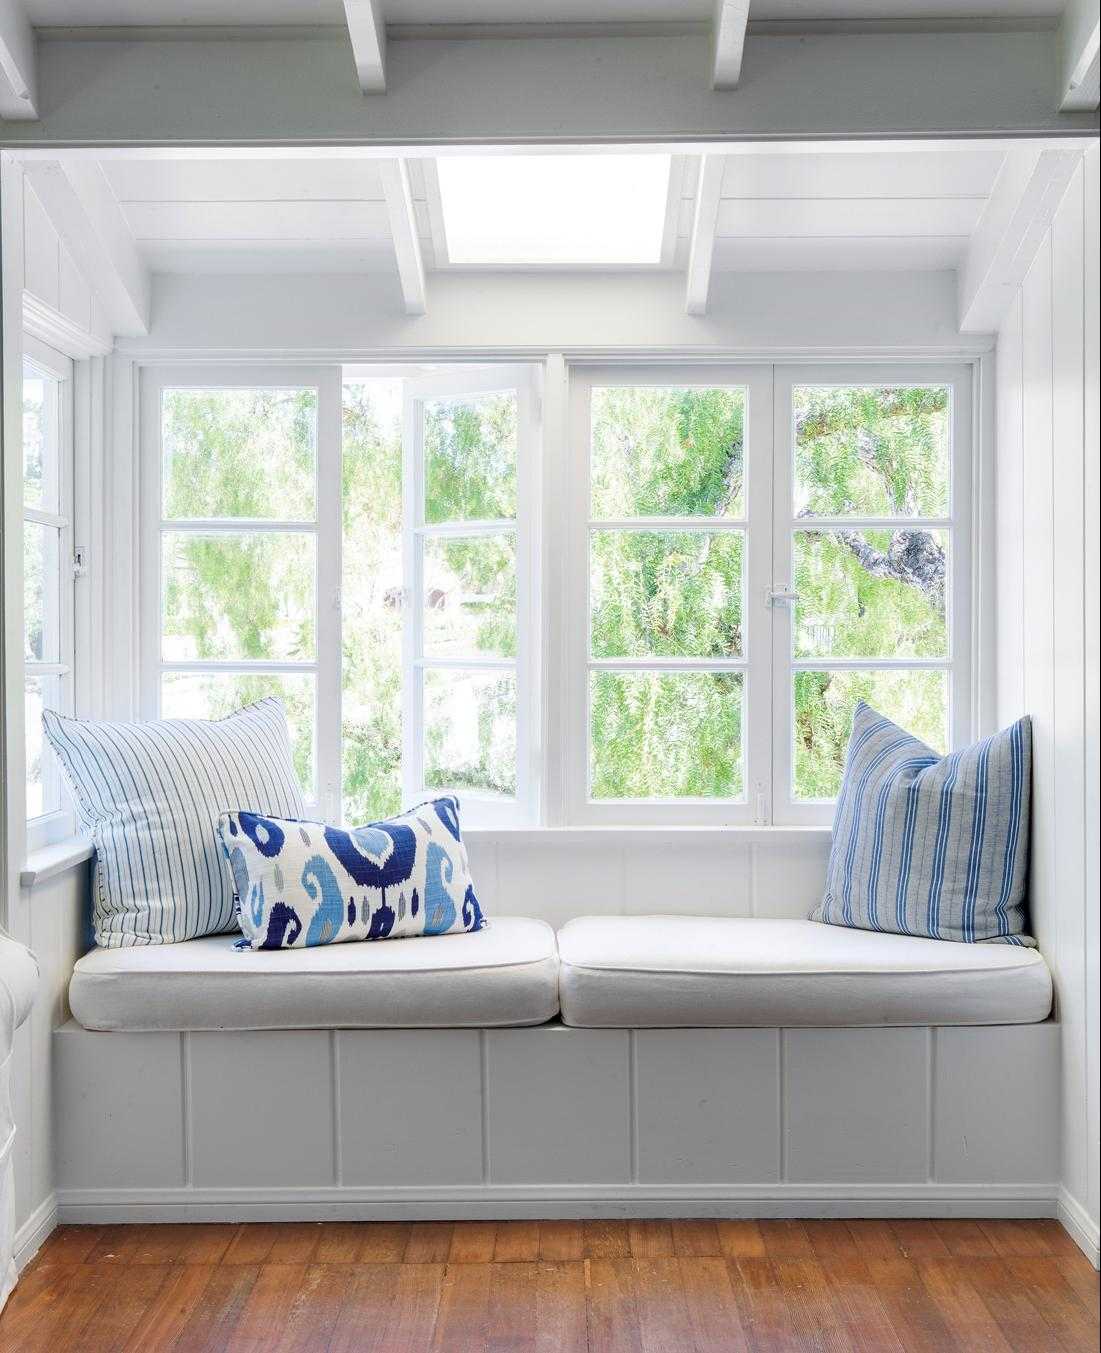 Window seat with all white walls and vaulted ceilings.